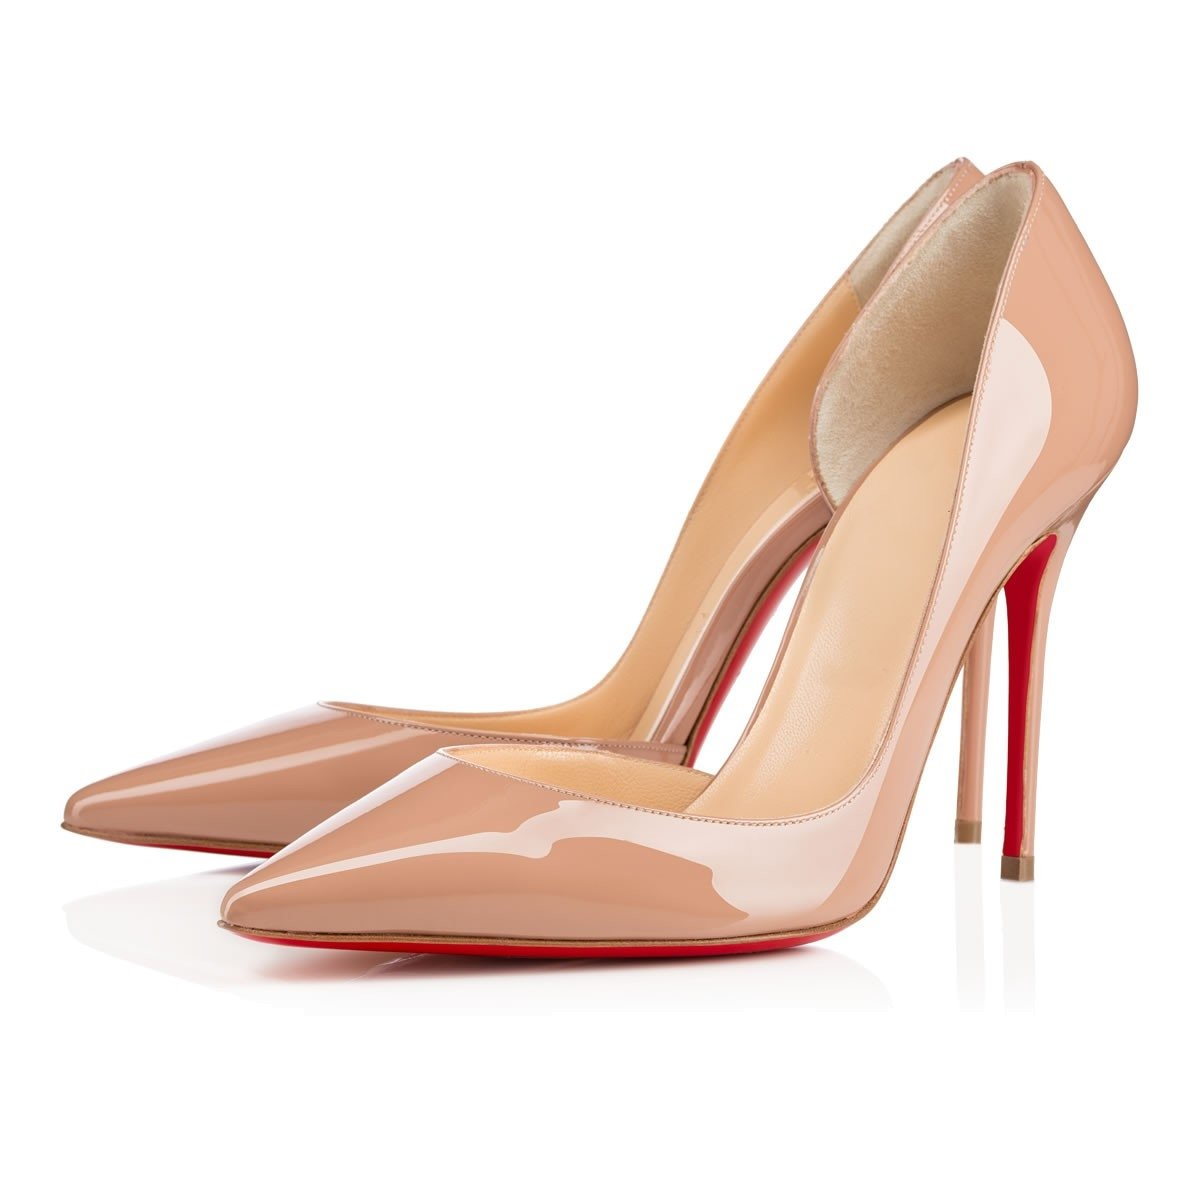 Chris-T Women Fashion D'Orsay Peep Toe with High Heel Stiletto Dress Party Pumps Size 5-15 US B07F7X1QMP 10 B(M) US Nude R/Red S0le(bottom)